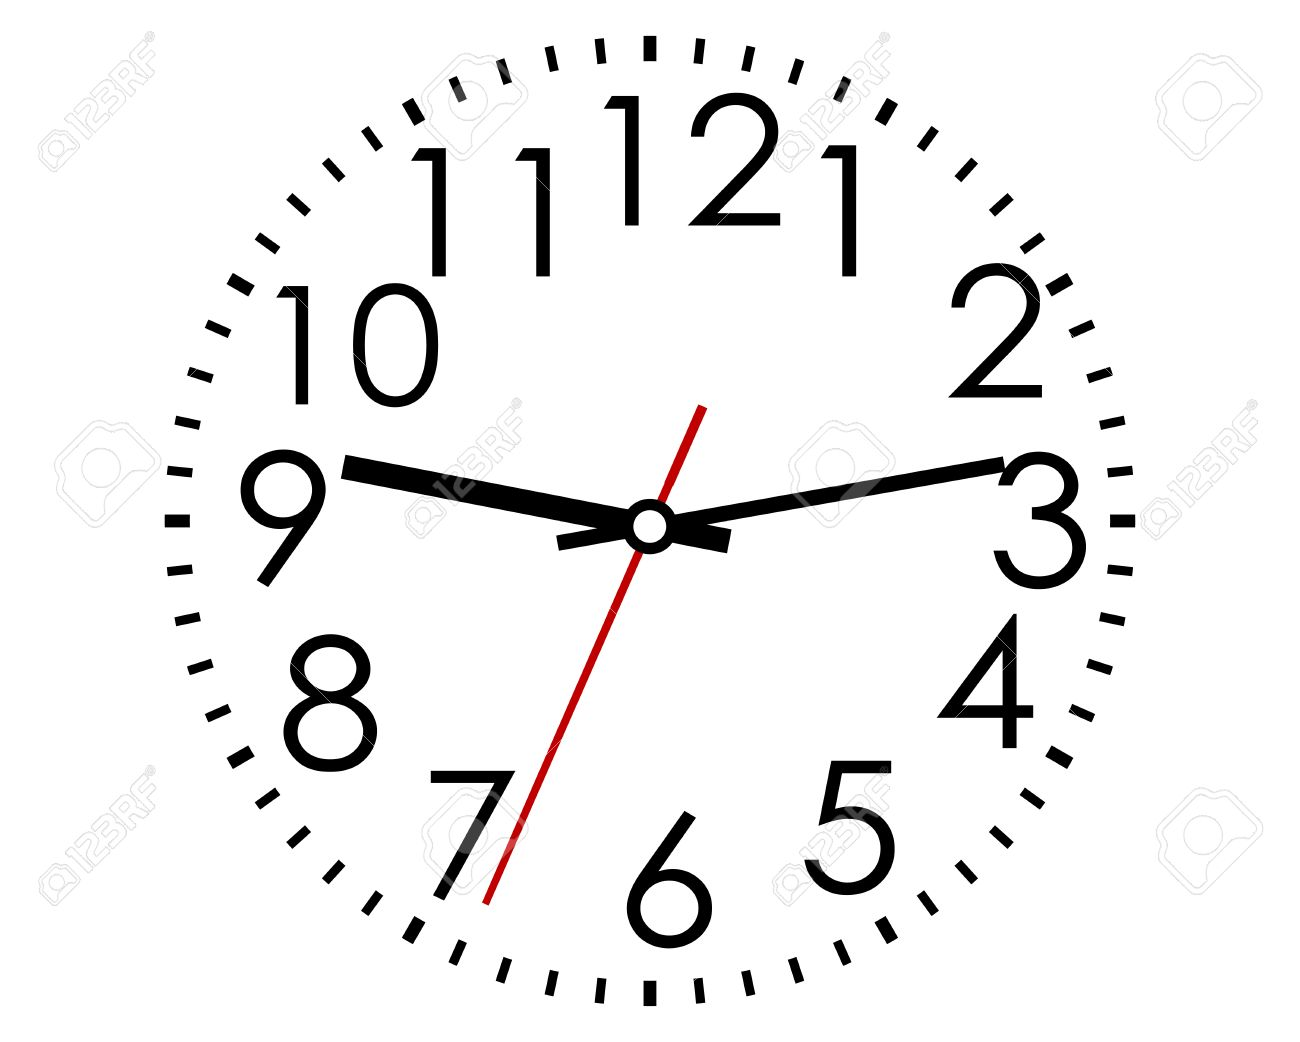 worksheet Clock Face With Hands round clock face with arabic numerals and hour minute second hands in a black